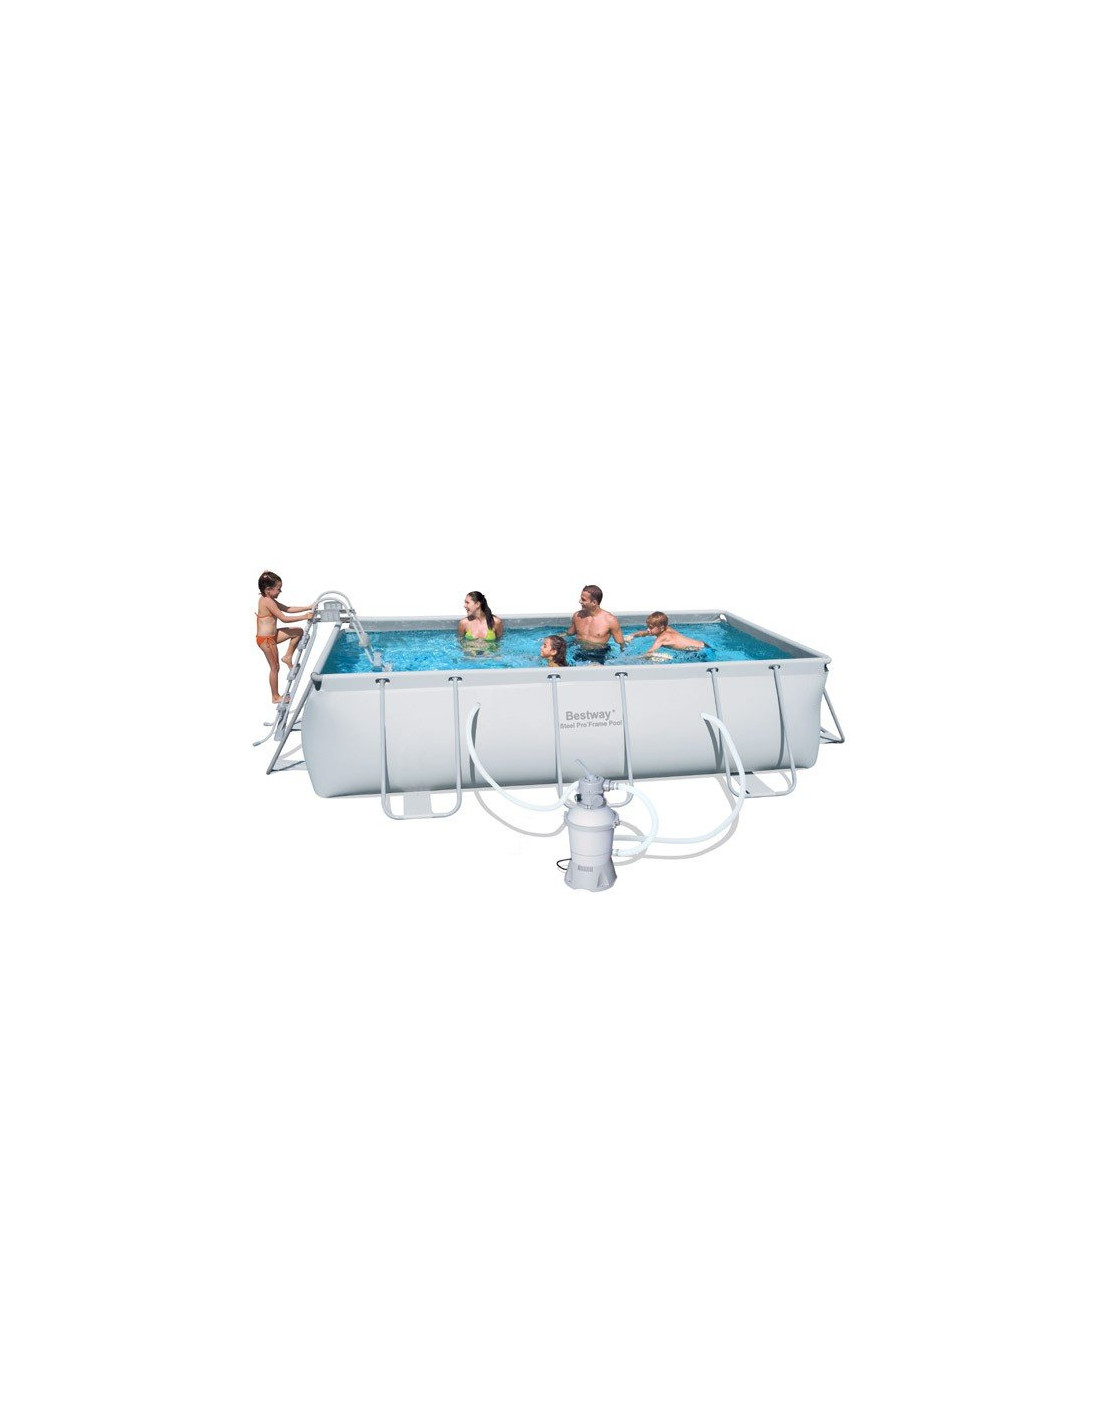 Piscine tubulaire rectangulaire bestway avec filtre sable for Pieces detachees pour piscine hors sol